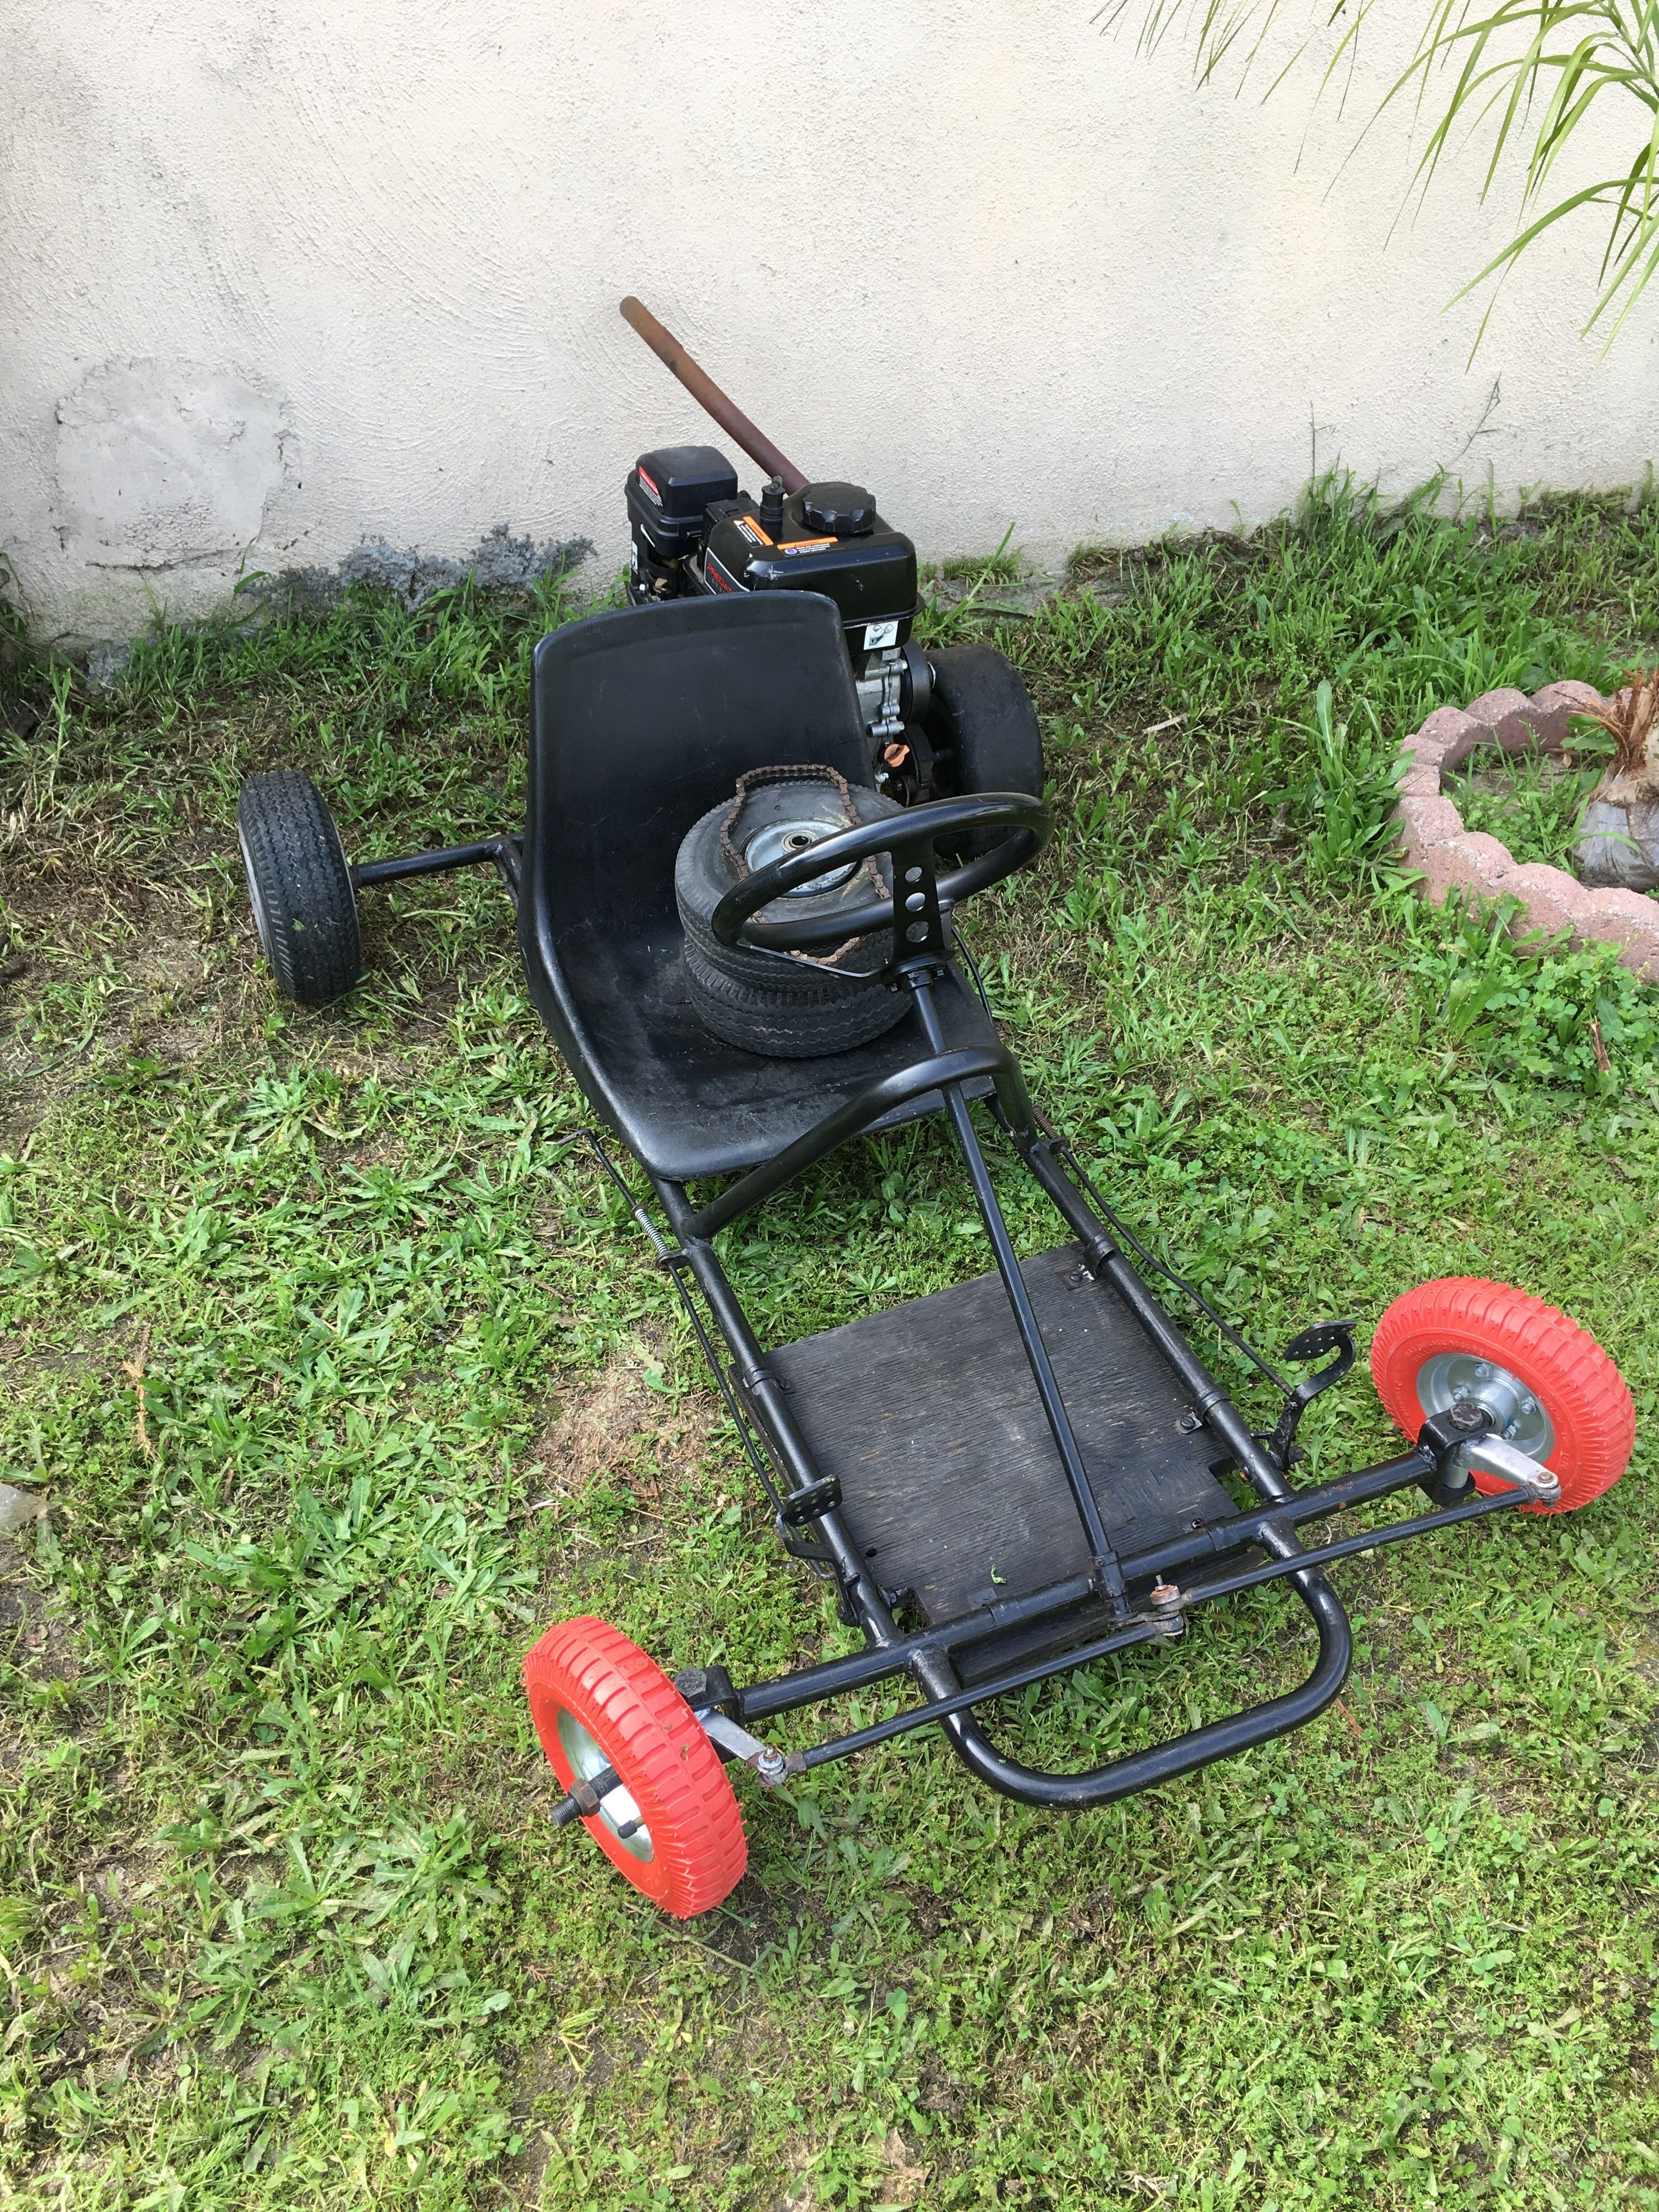 City of Downey | Go Kart For Sale | Outdoor chairs, Go kart